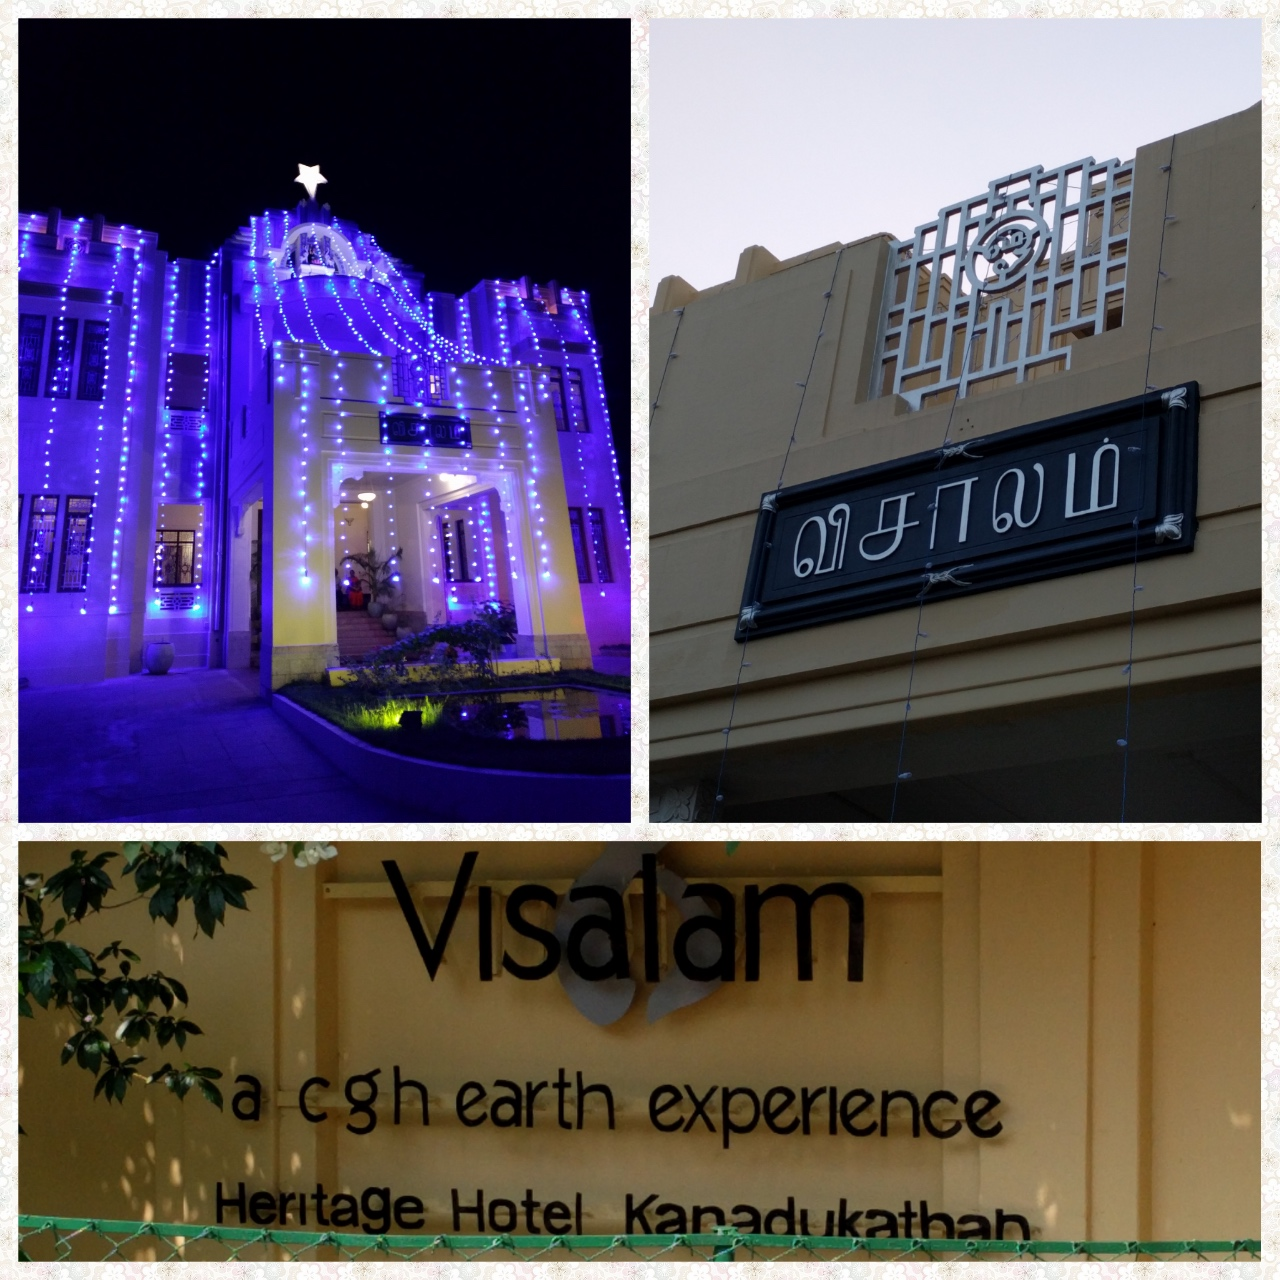 Visalam by CGH earth